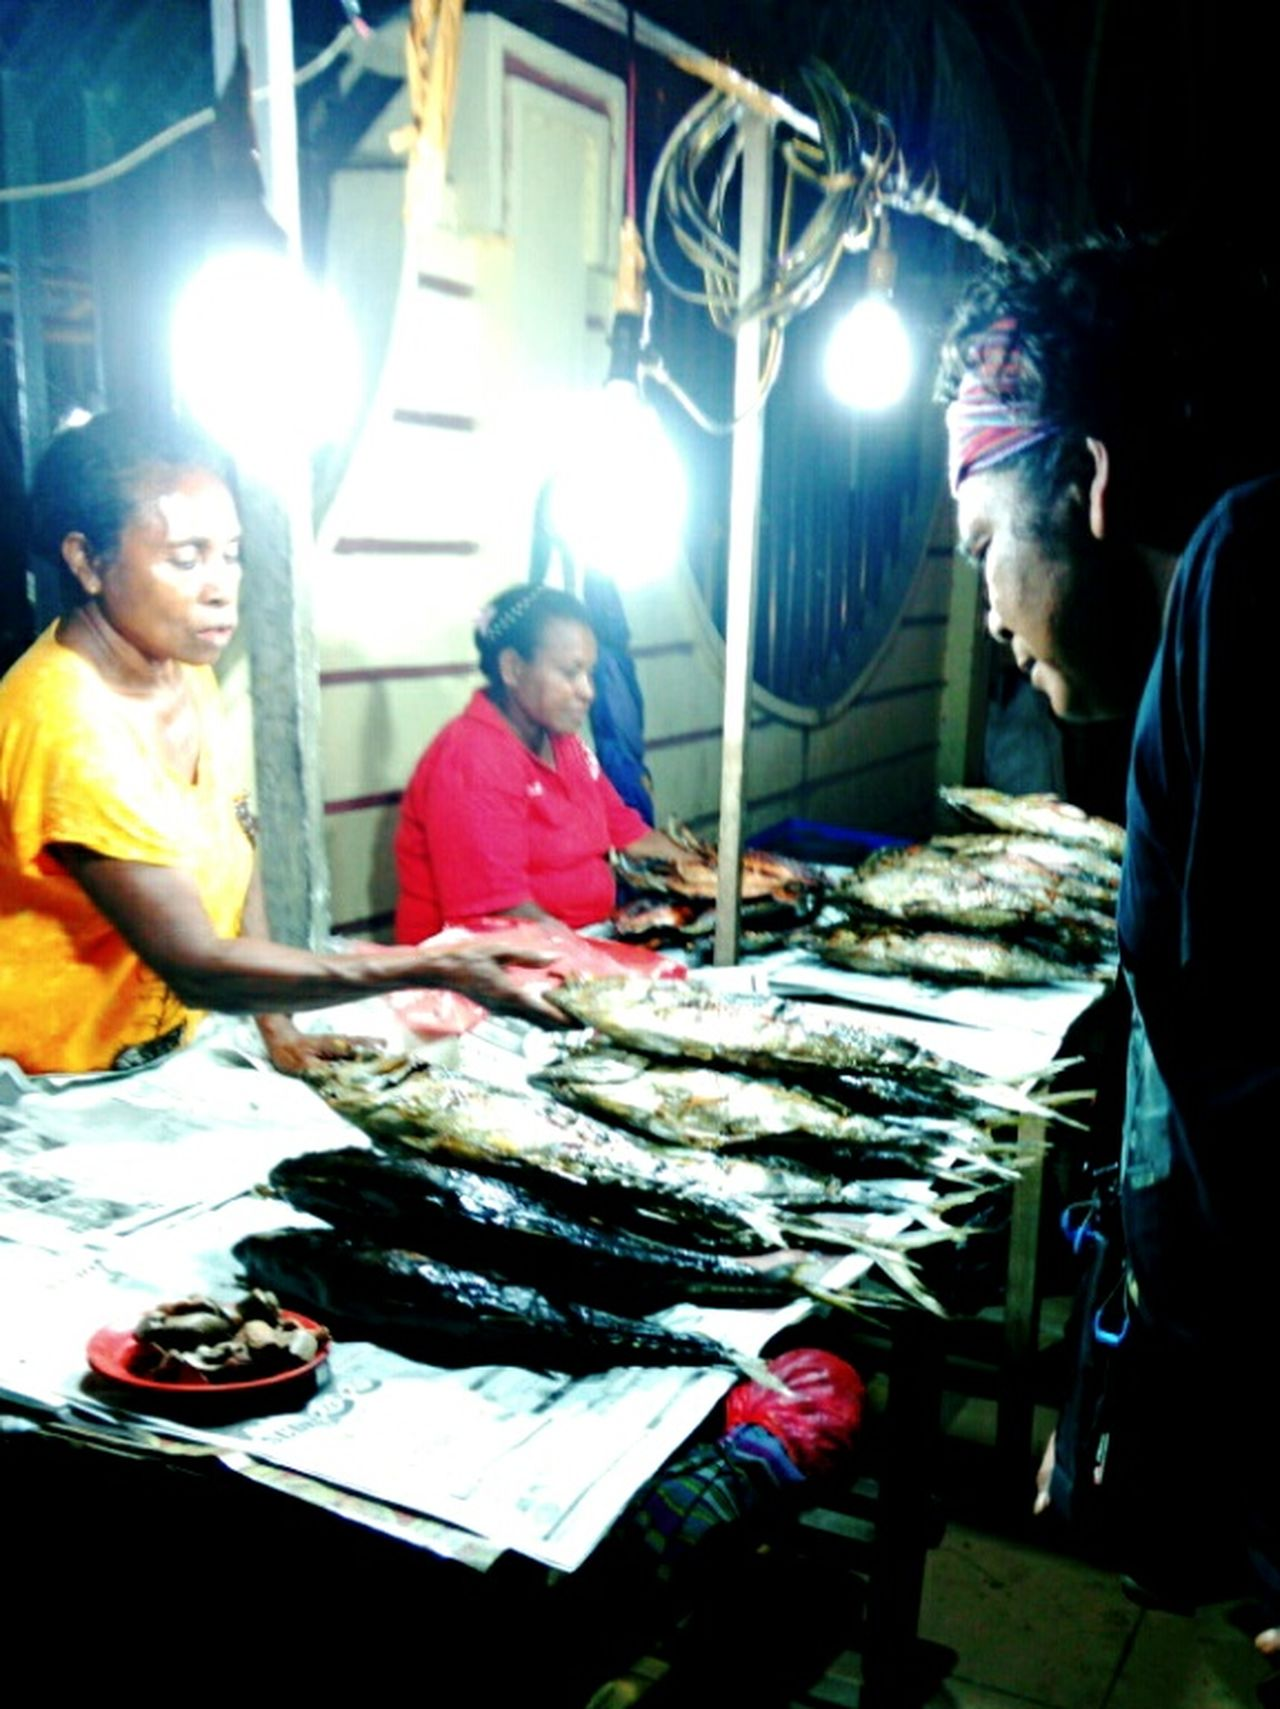 Beautifully Organized Snap A Stranger EyeEm Best Shots Taking Pictures Hello World The Week Of Eyeem EyeEmBestPics TakeoverContrast The Great Outdoors - 2016 EyeEm Awards The Portraitist - 2016 EyeEm Awards Papua Indonesia  Night Photography Fish Market Night Shot Night Market